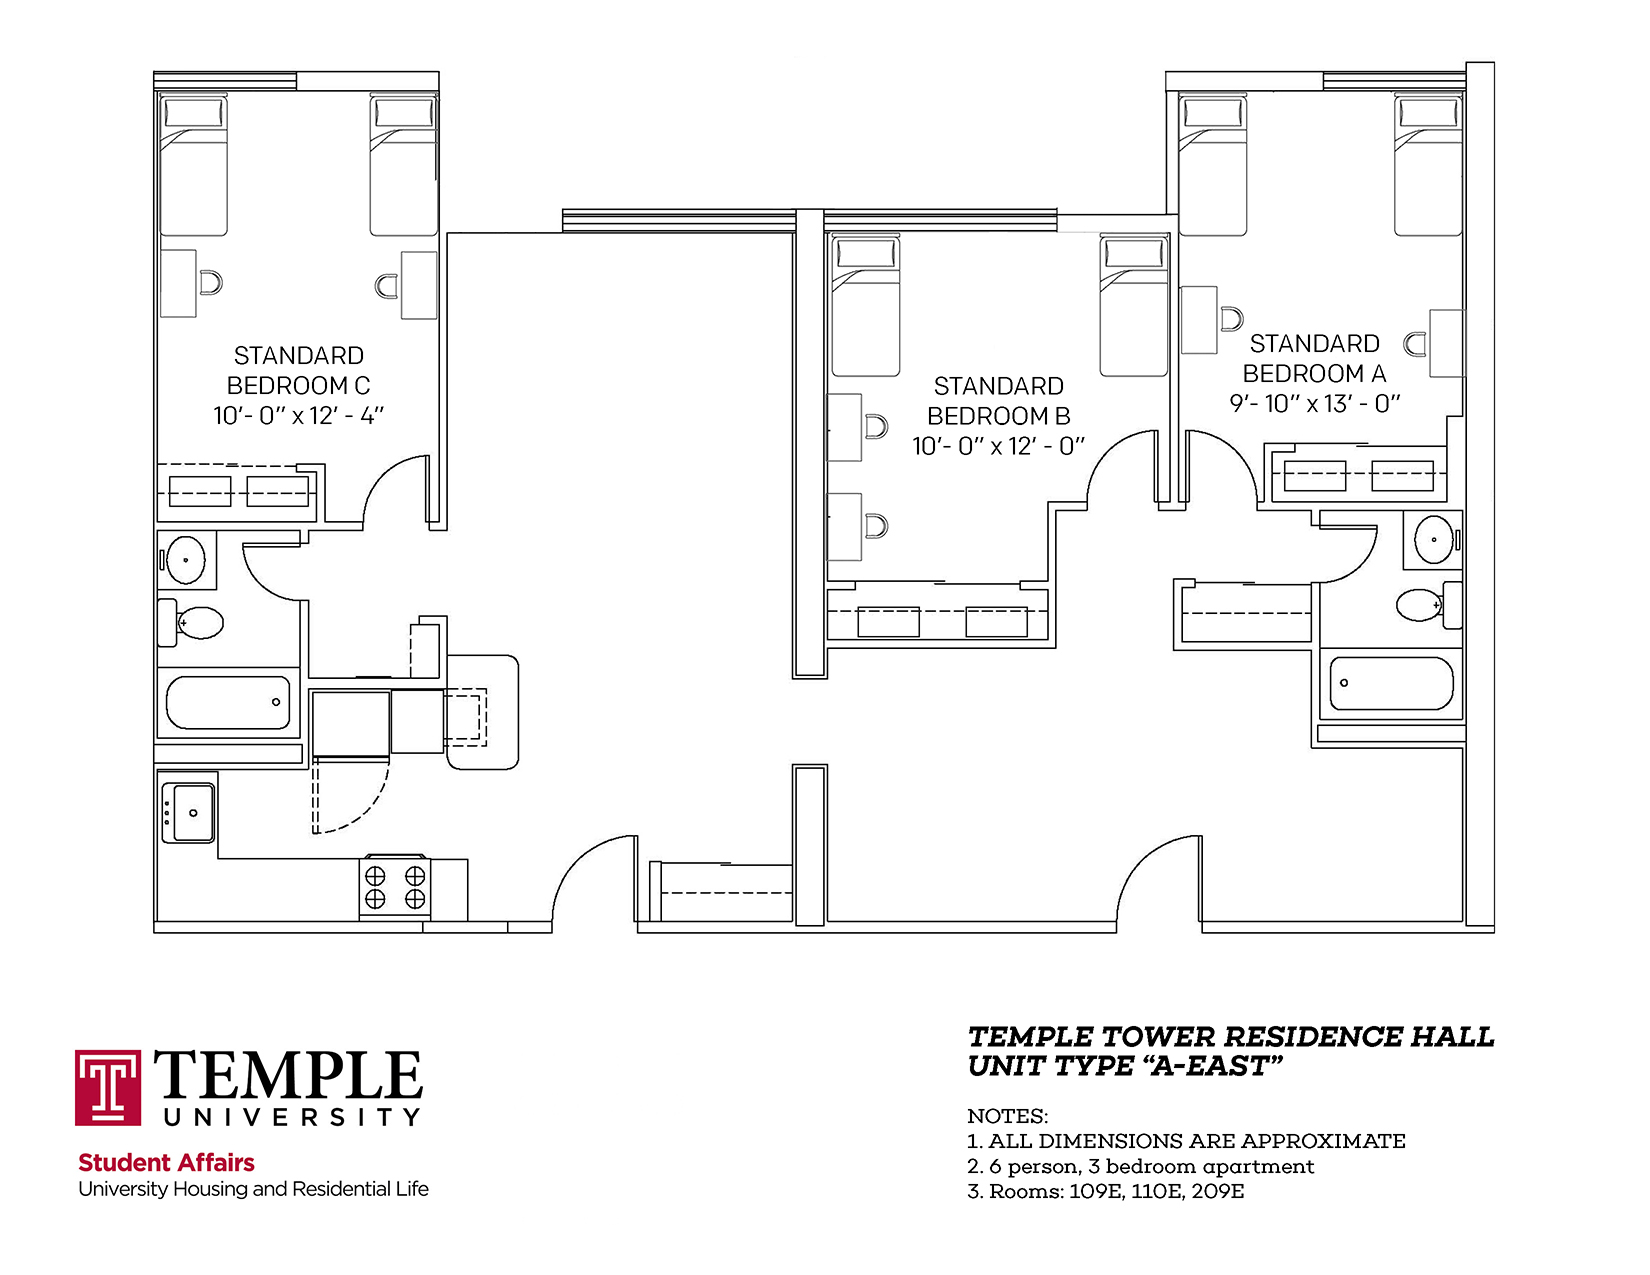 Temple Towers: Unit A East - 6 person, 3 bedroom Apartment